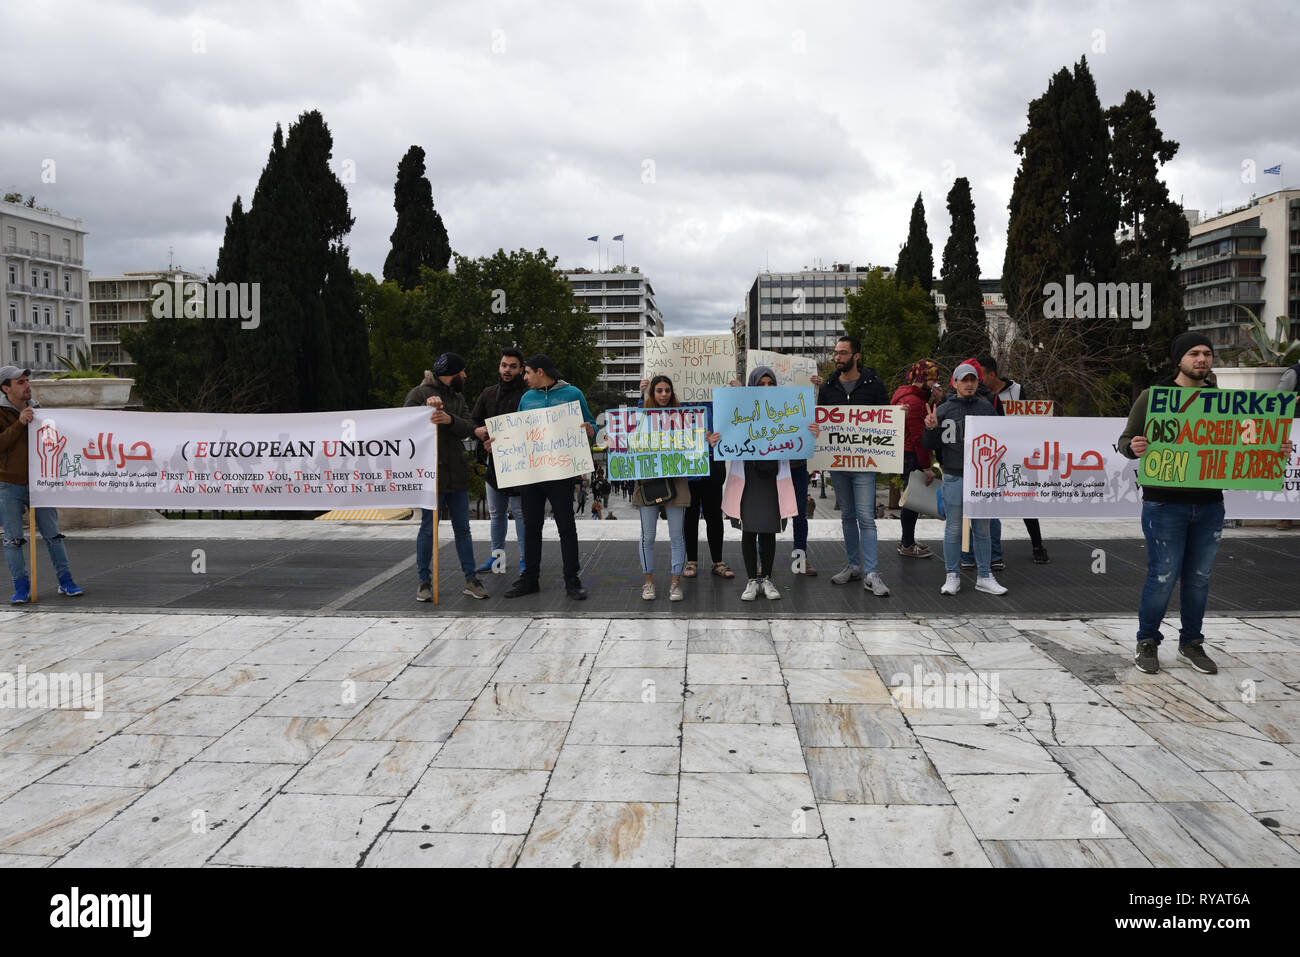 Athens, Greece. 13th Mar 2019. Refugees and supporters protest demanding from the EU and the Greek government funds for the refugee rental housing program in Athens, Greece. Credit: Nicolas Koutsokostas/Alamy Live News. Stock Photo